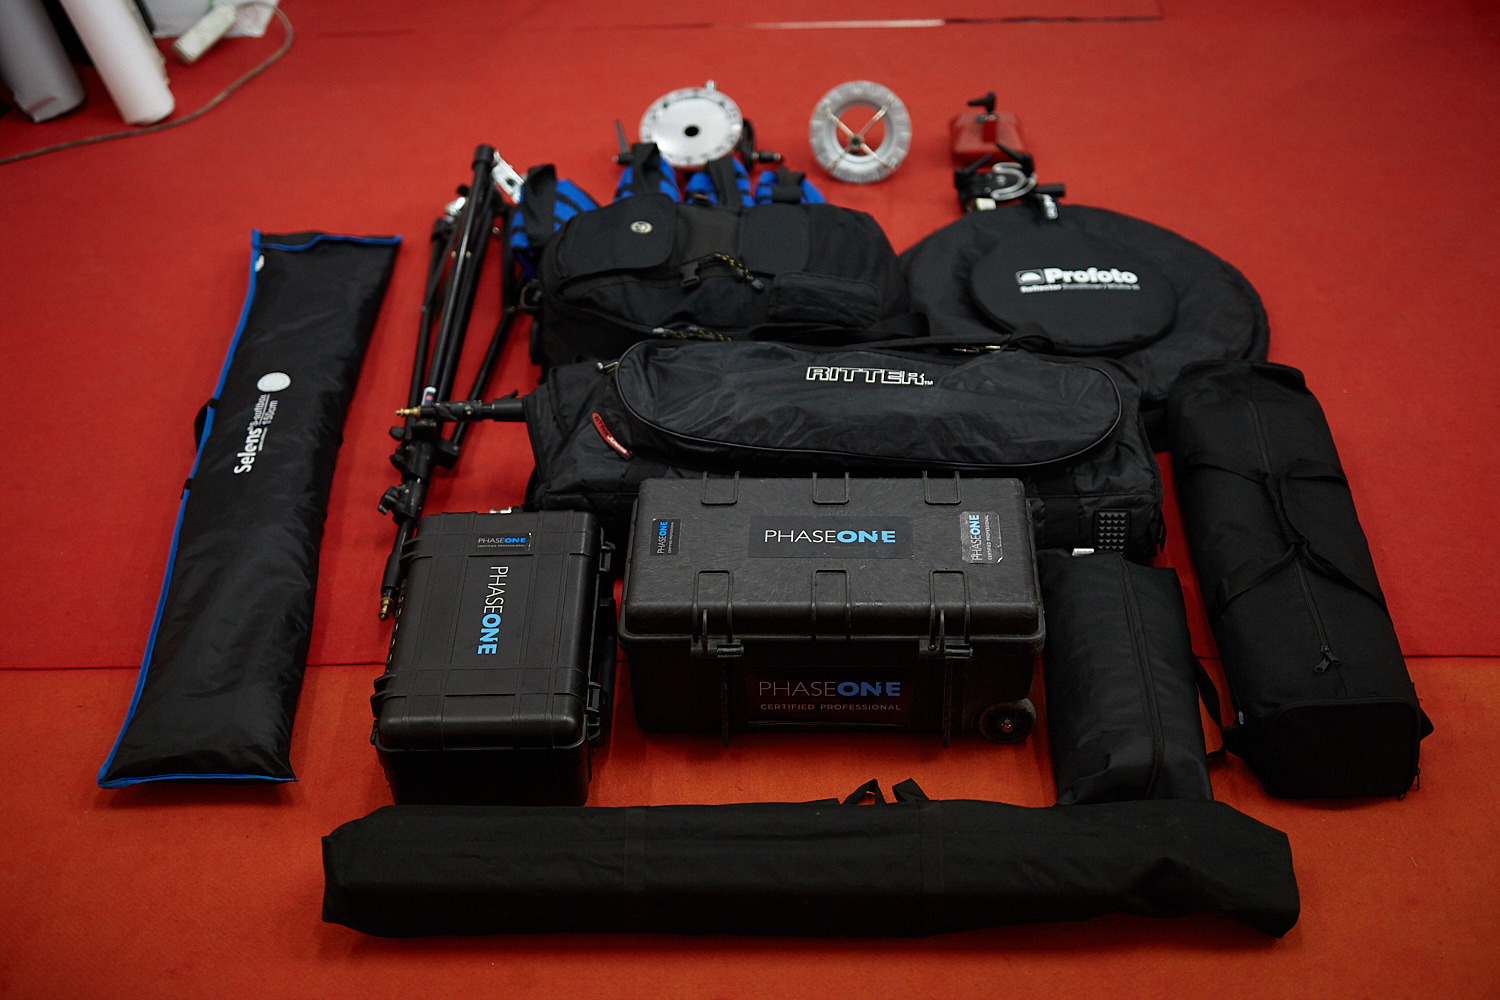 Some of the equipment by Adolfo Usier